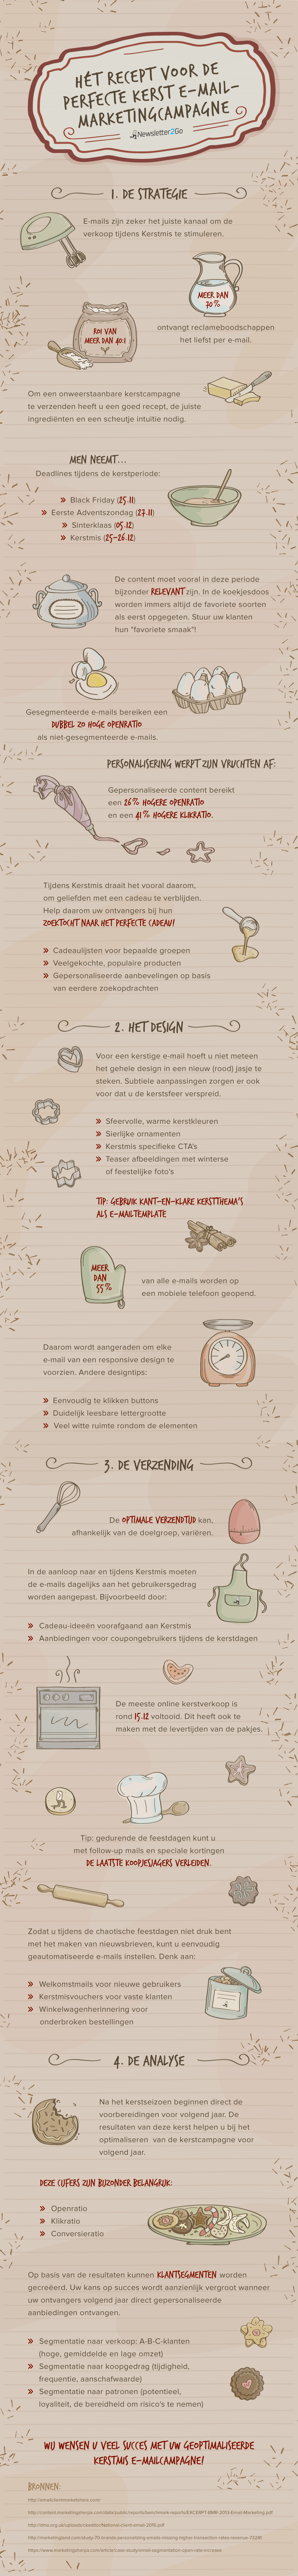 recept_perfecte_kerst-e-mailmarketing-campagne